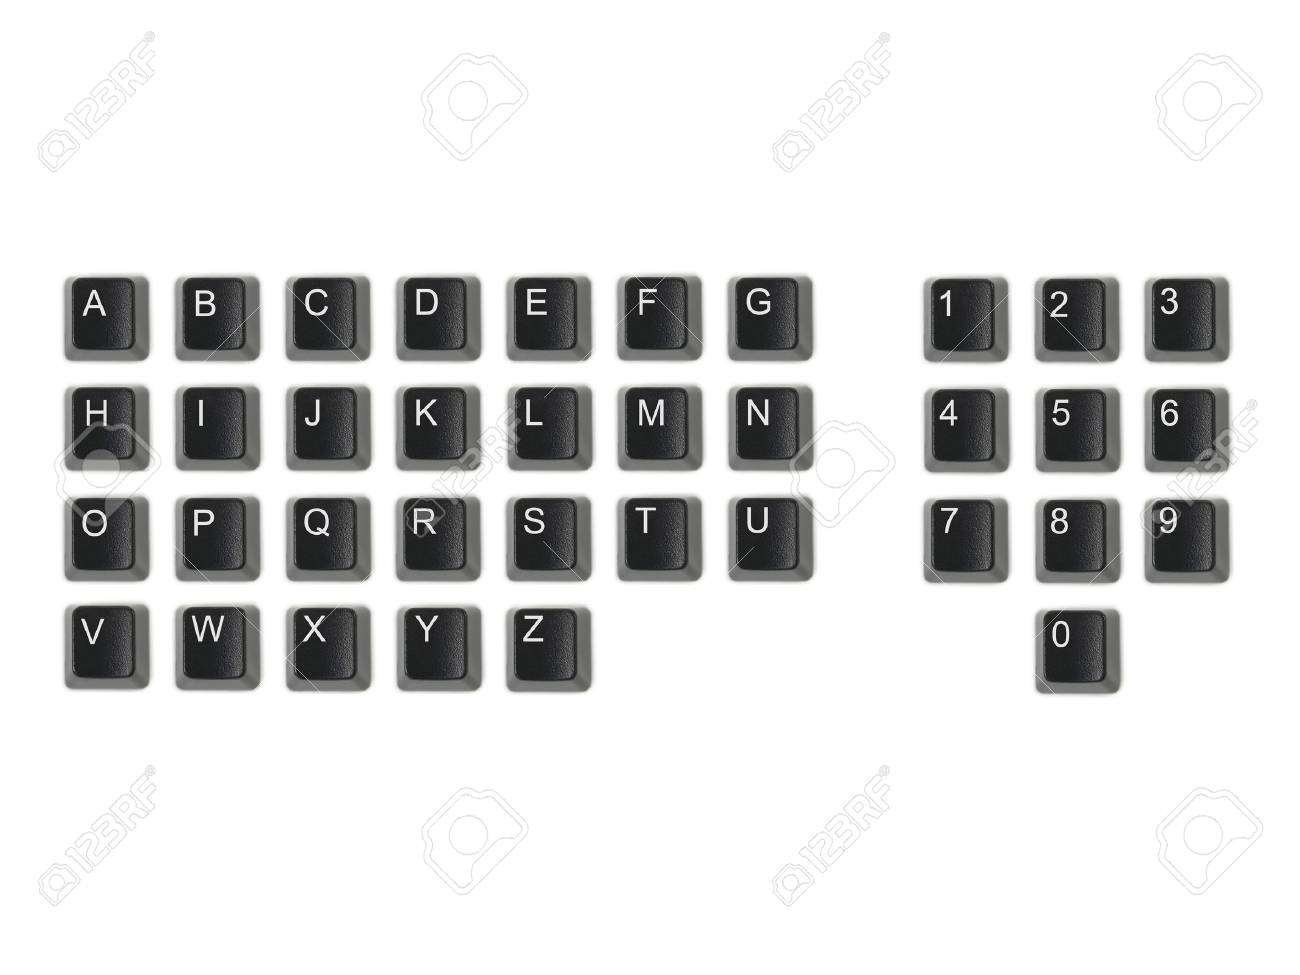 A keyboard key isolated against a white background Stock Photo - 8286861